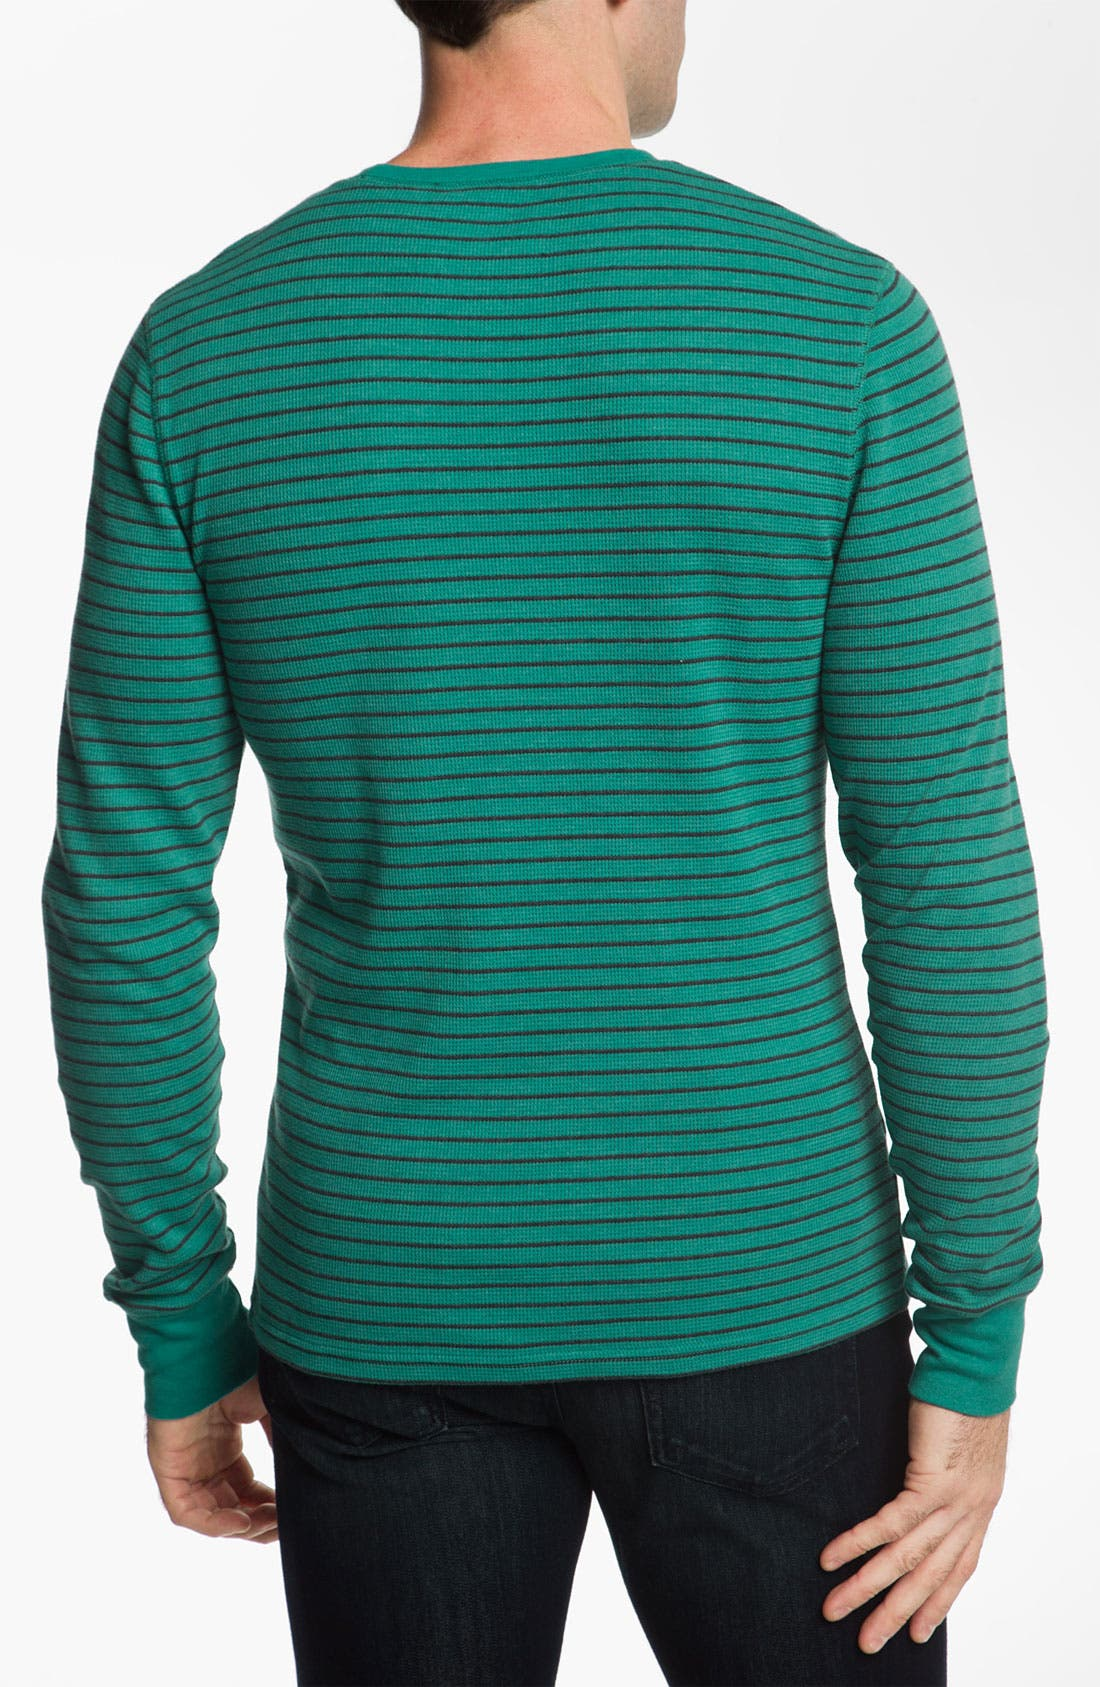 Alternate Image 2  - The Rail by Public Opinion Stripe Thermal Shirt